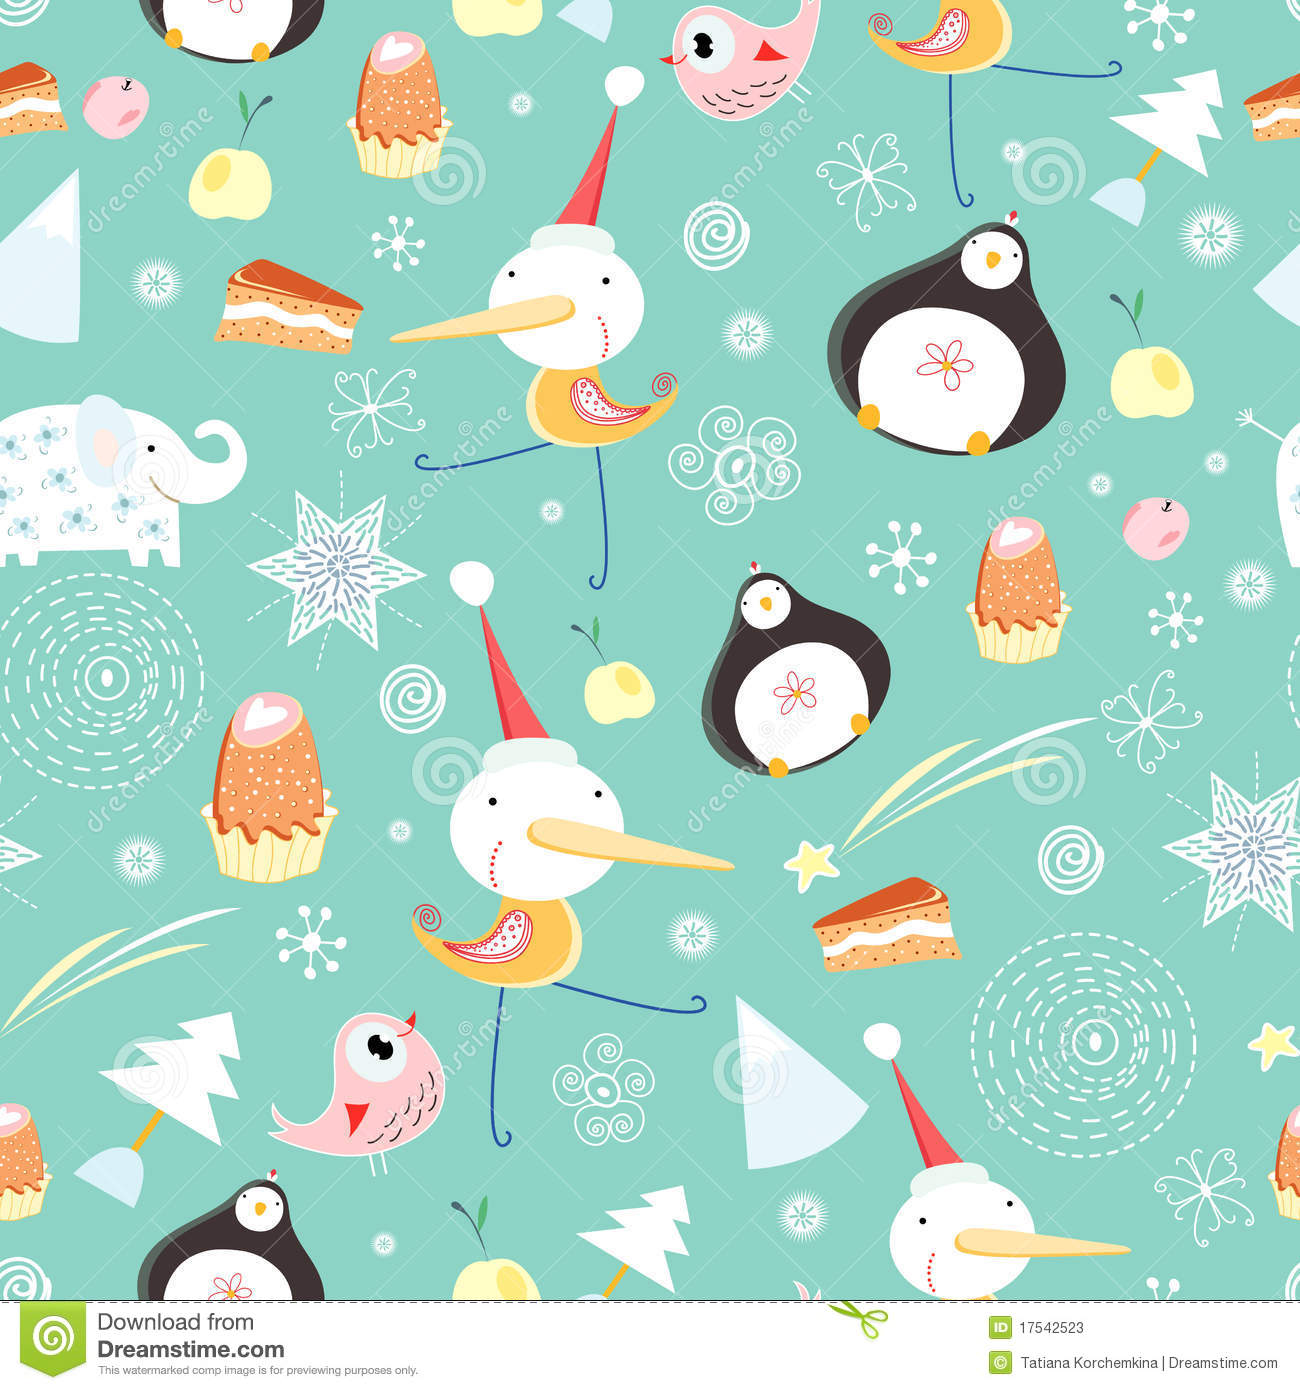 clip art page backgrounds